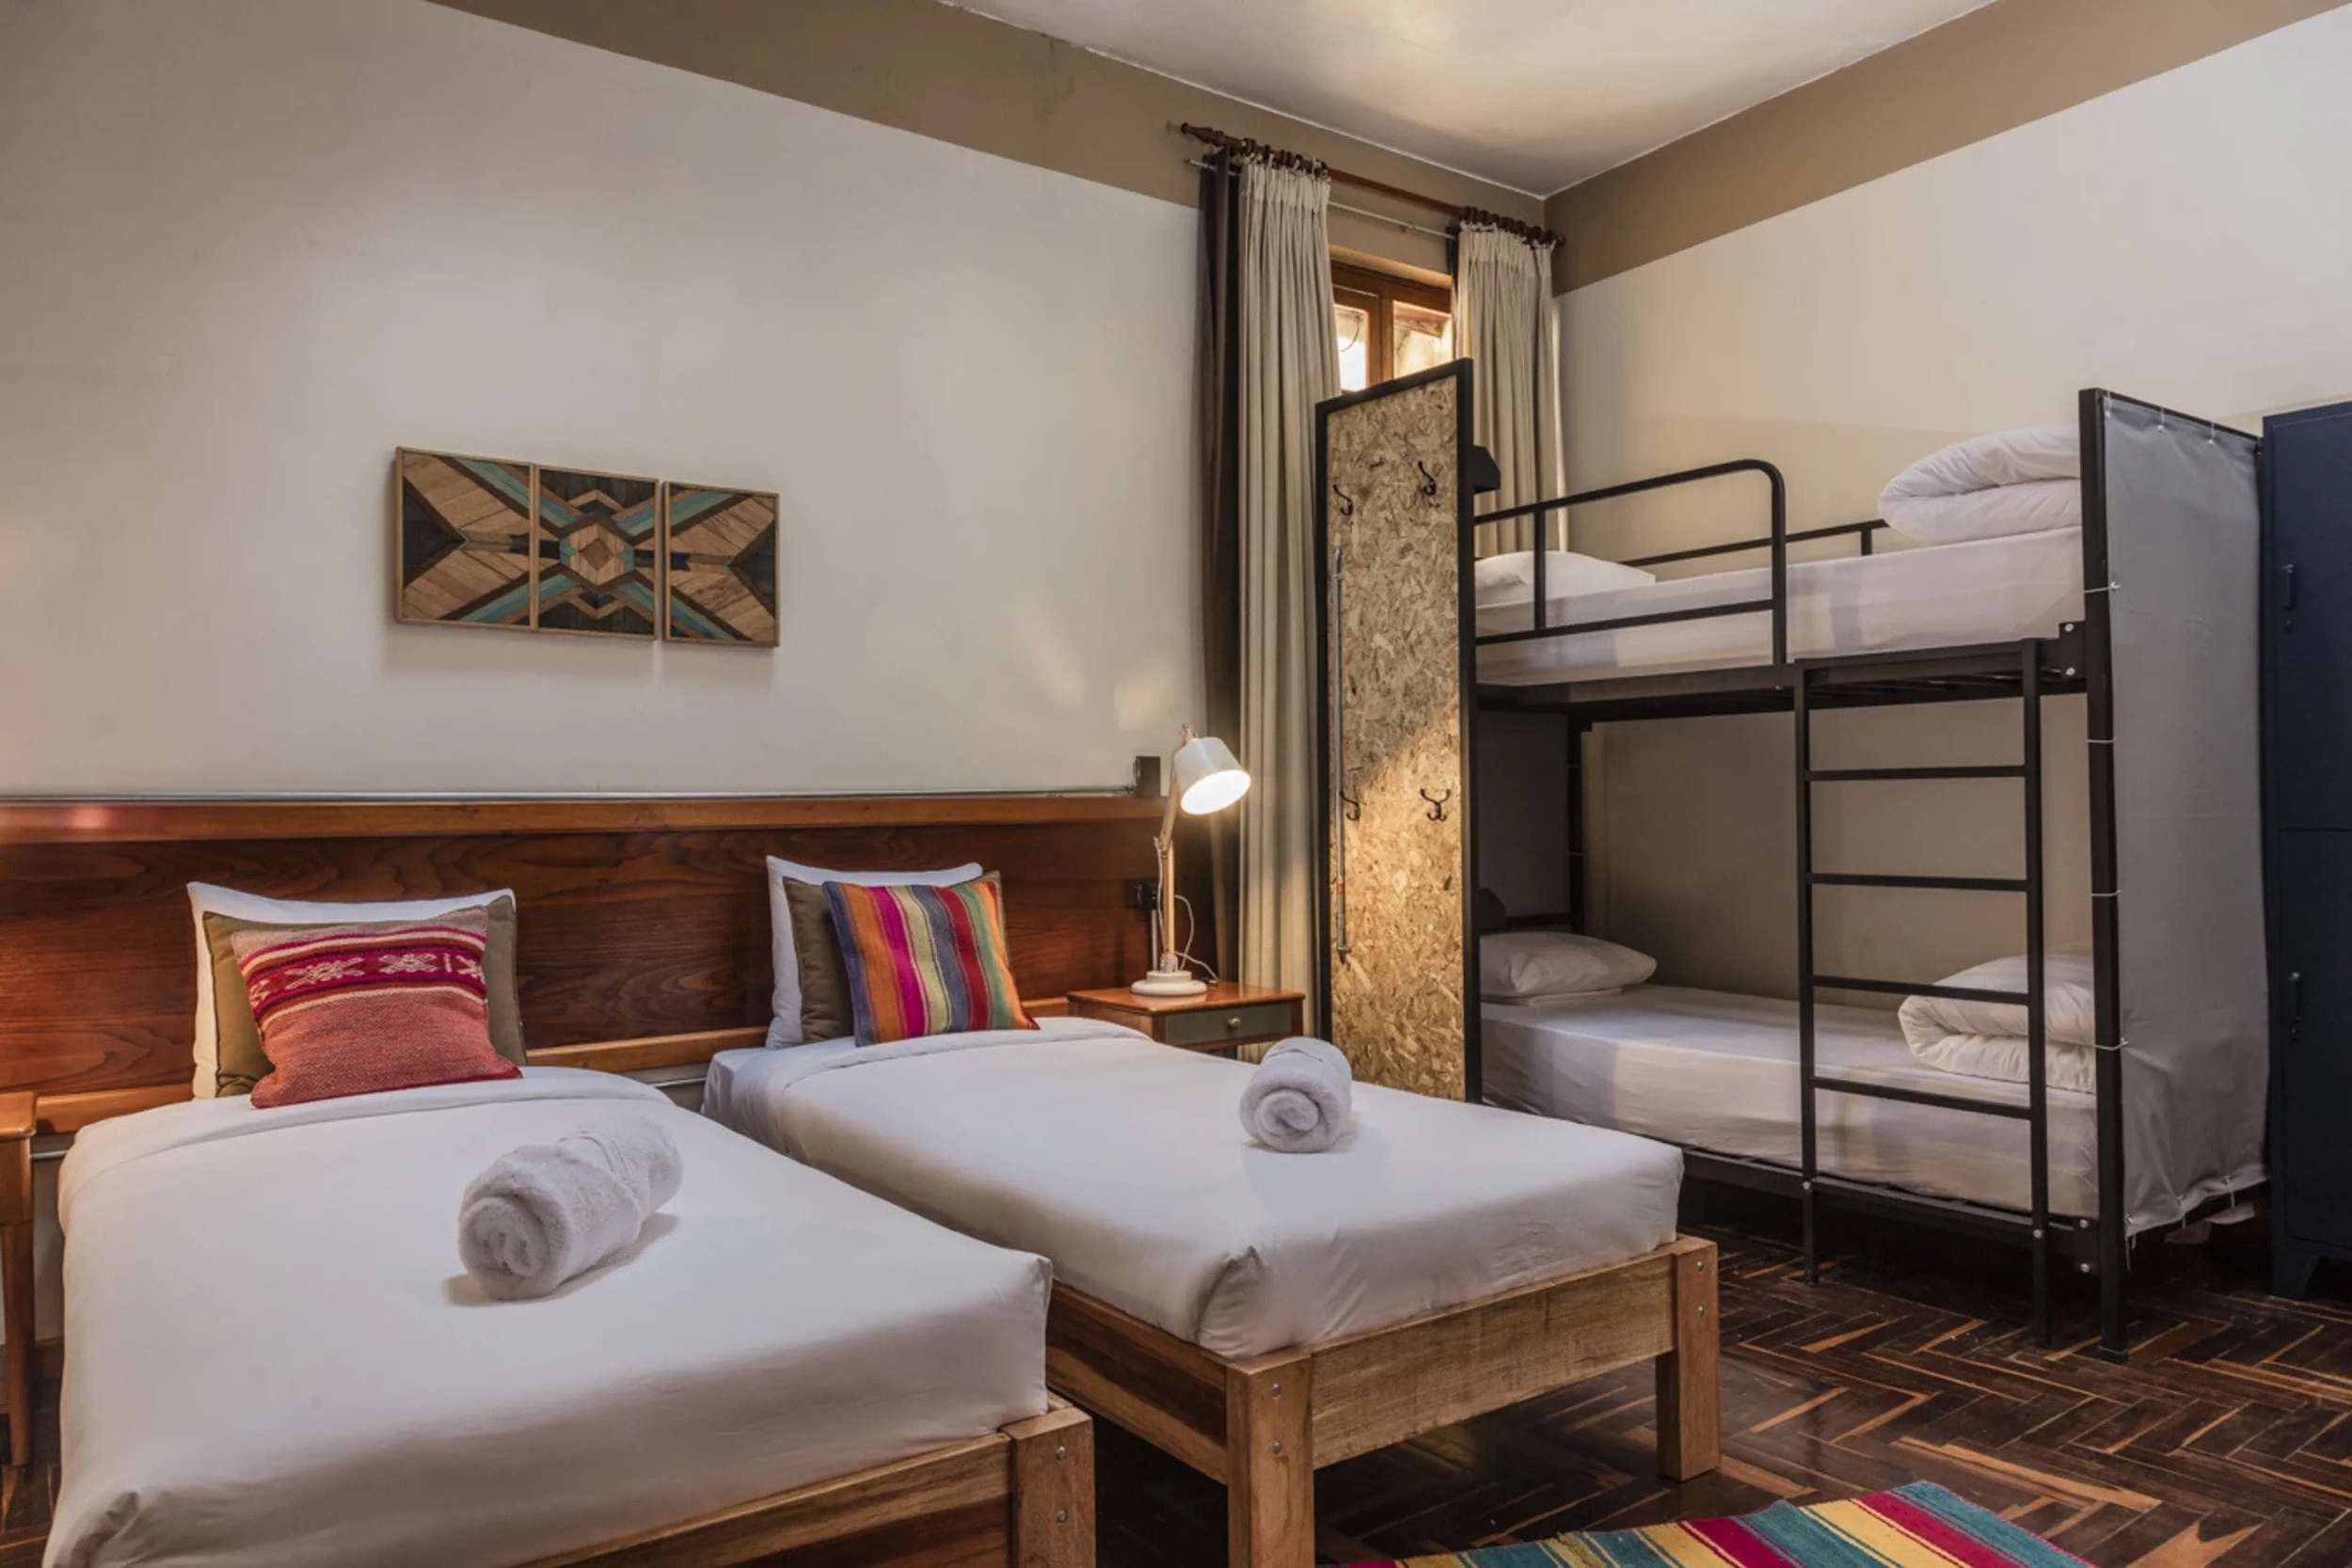 Selina is the Best Hostel in Cusco for Digital Nomads